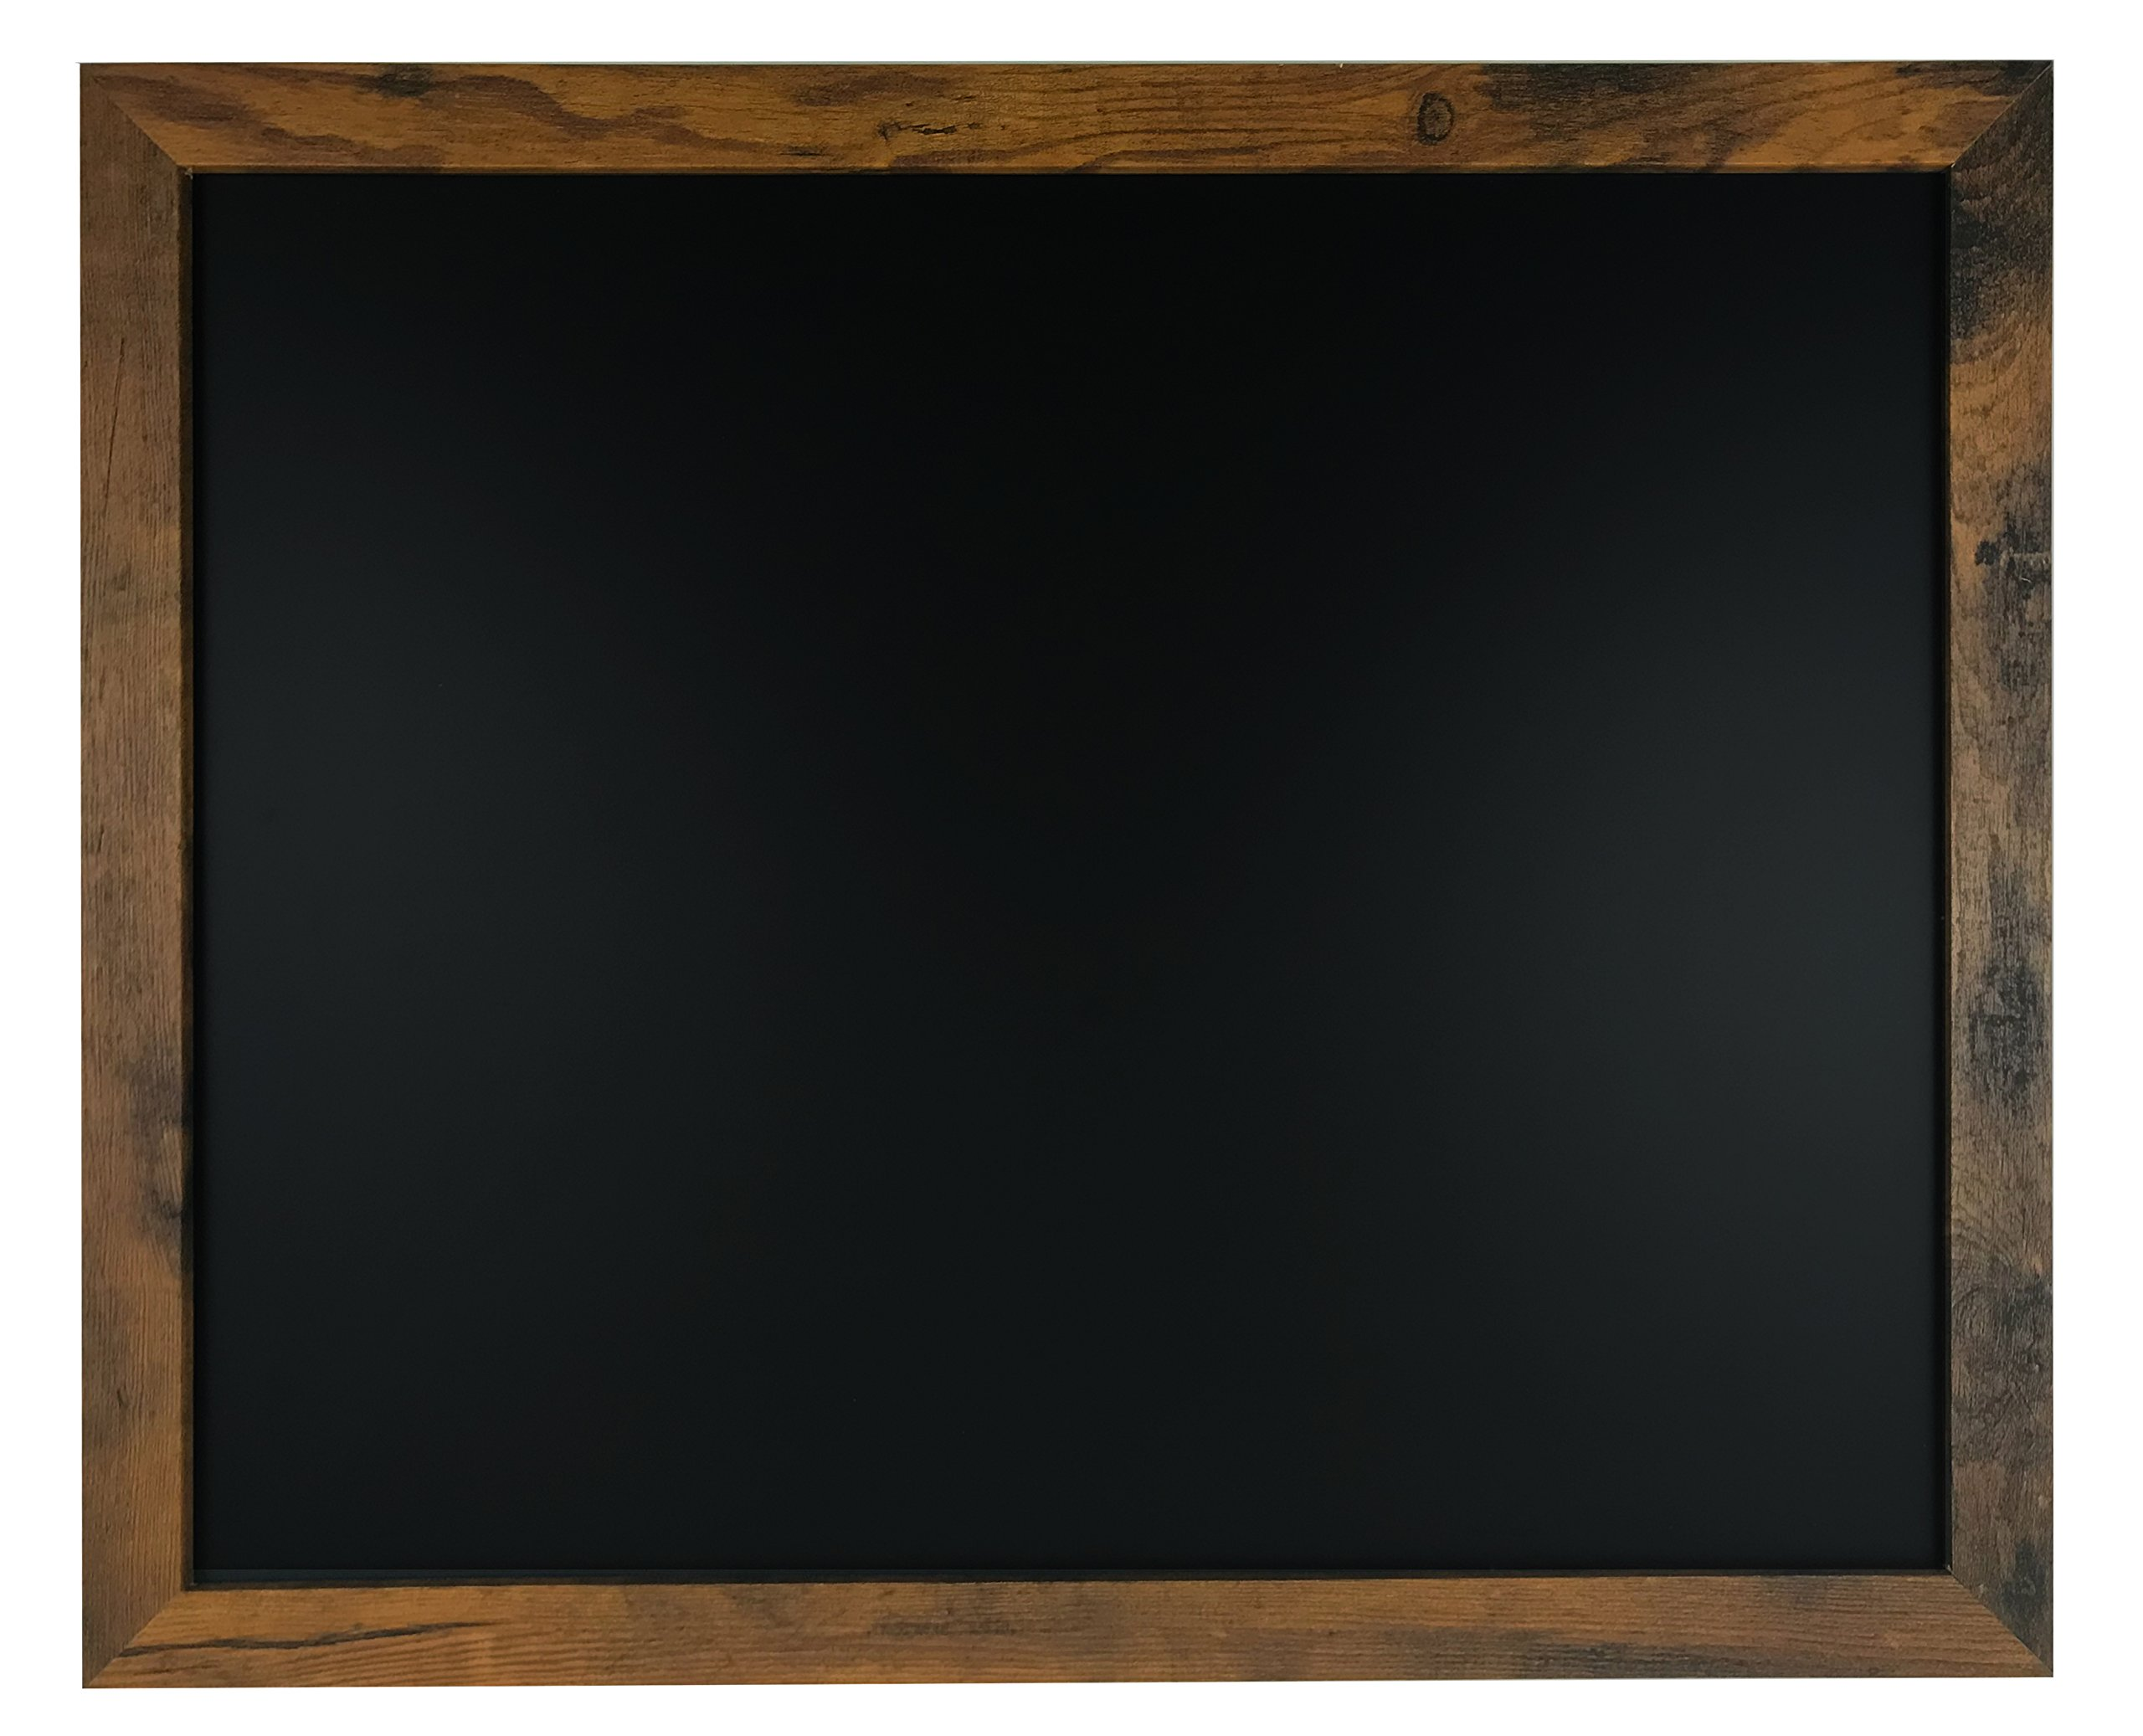 Rustic Wood Premium Surface Magnetic Chalk Board- 18''x22'' Perfect for Chalk Markers and Home Decor